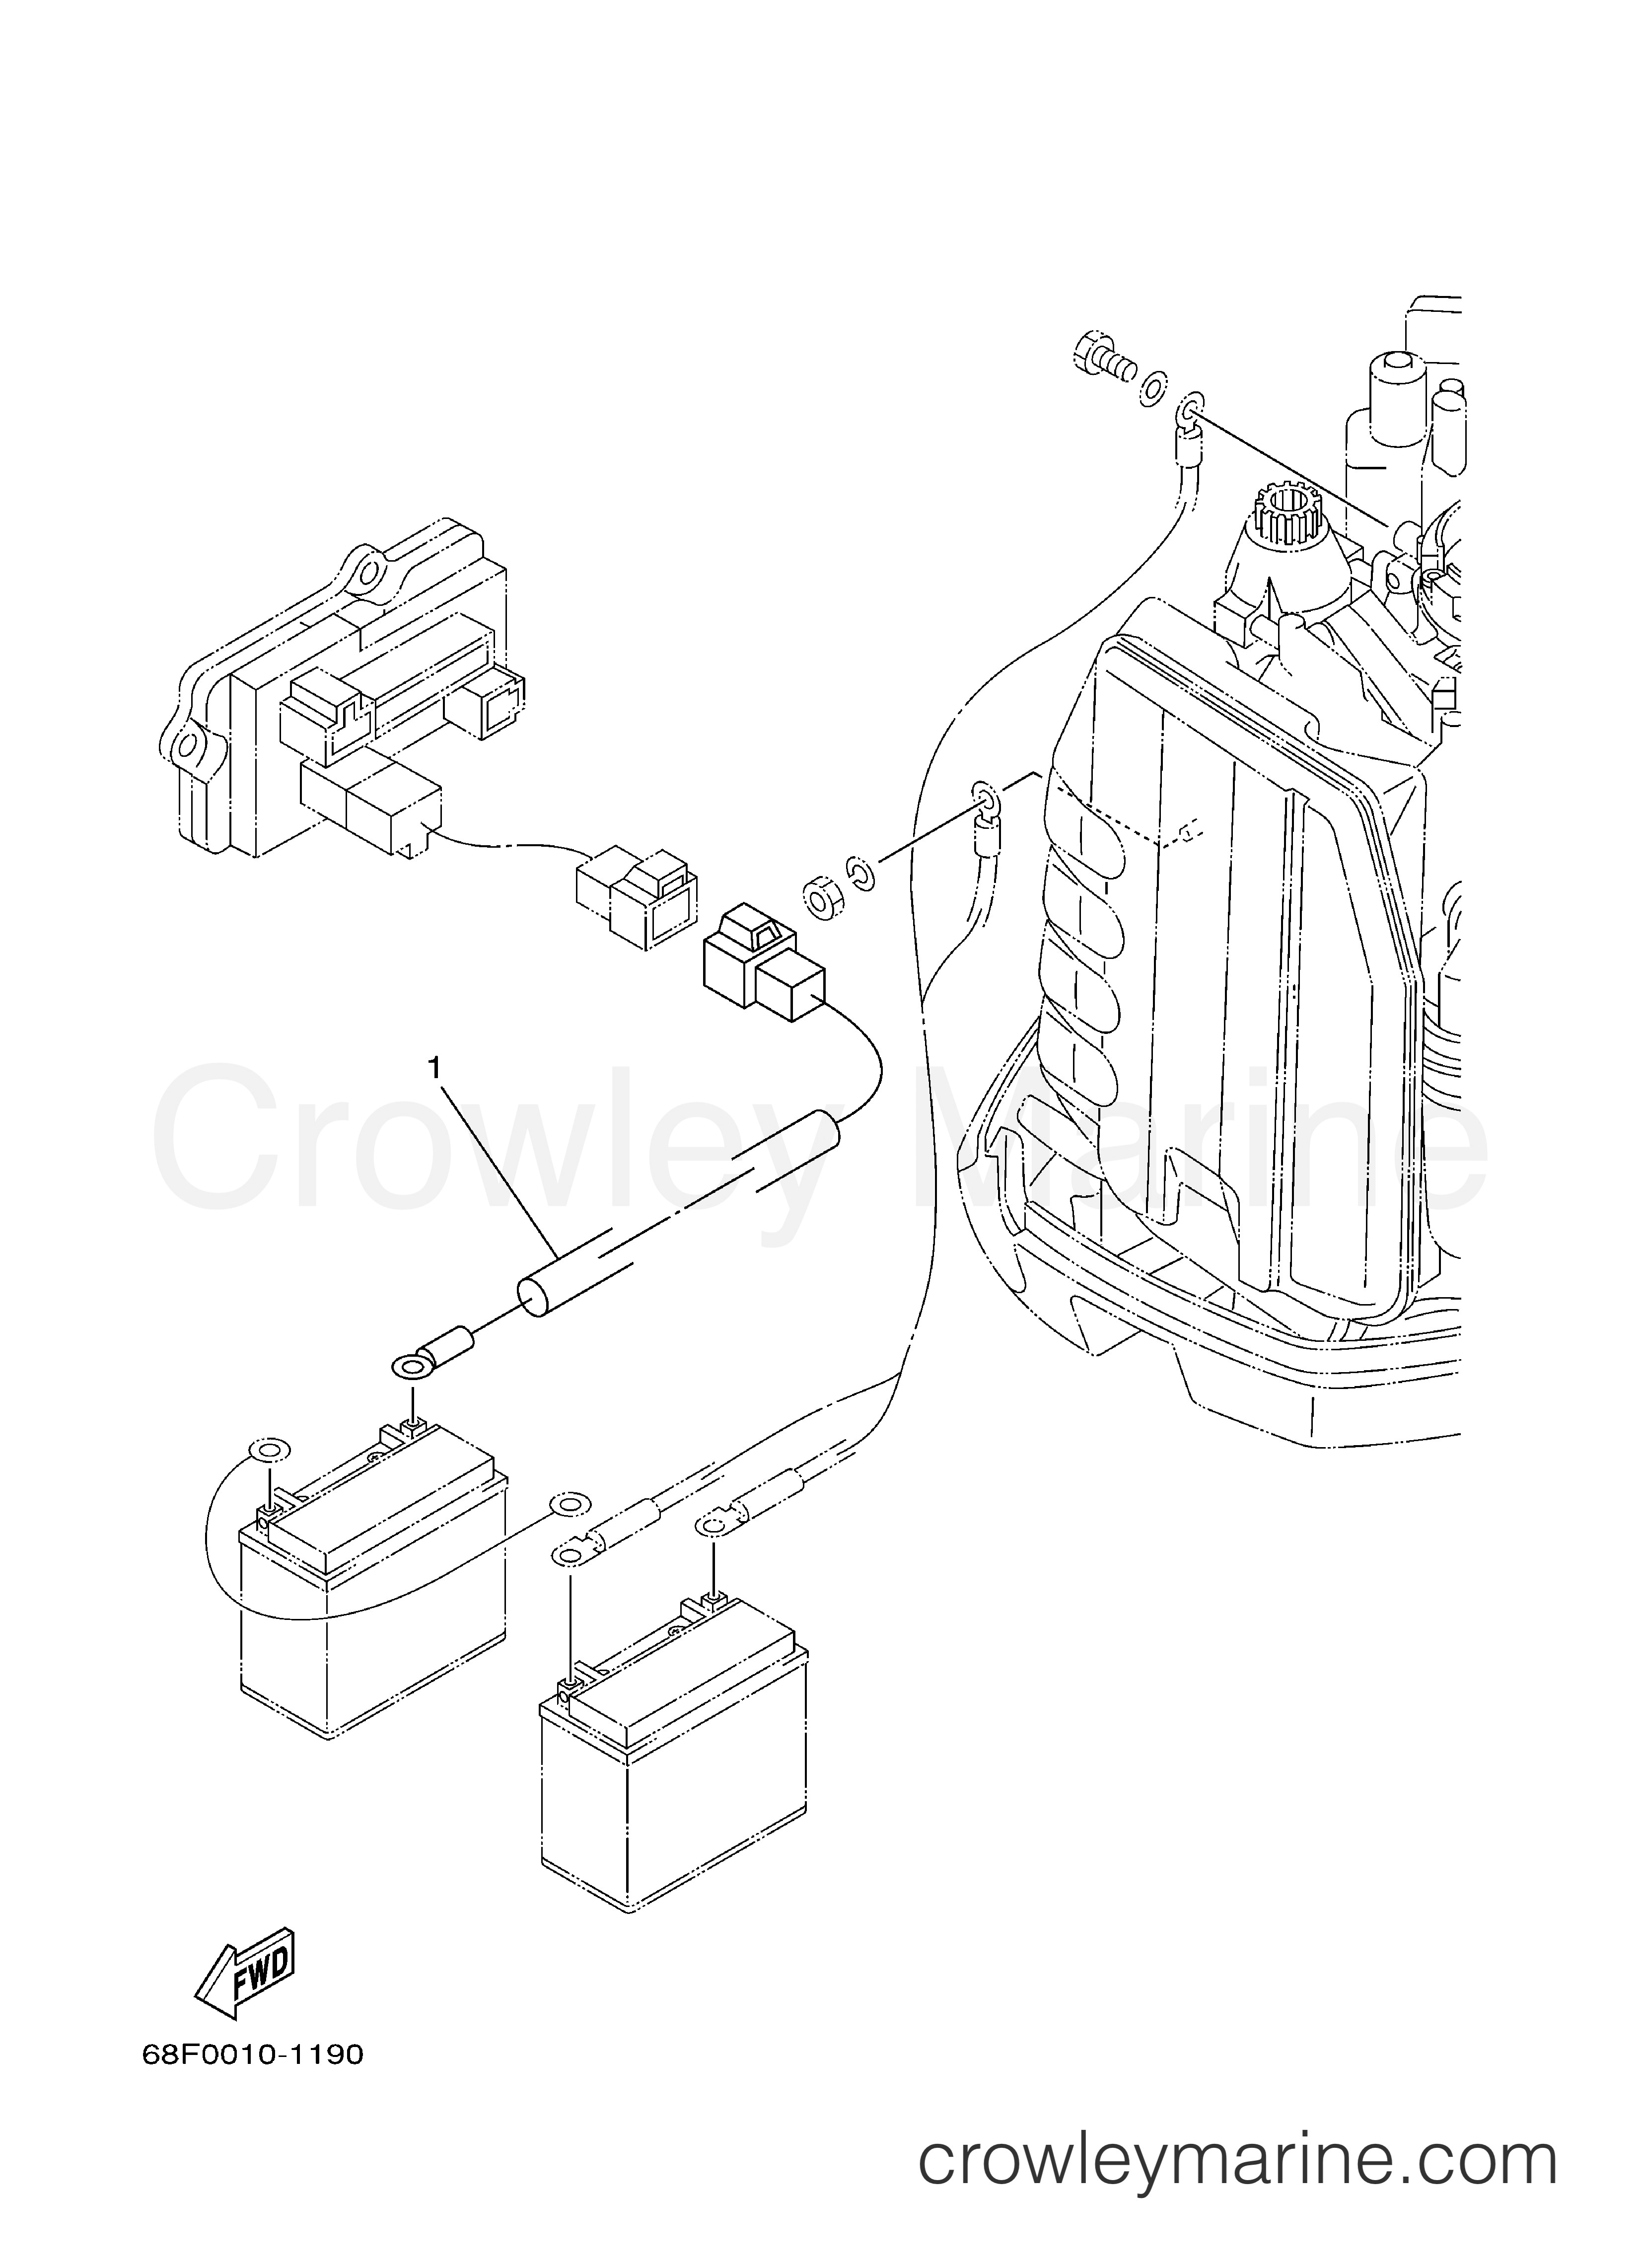 Inboard Outboard Engine Diagram Optional Parts 1 2001 Yamaha Outboard 150hp Z150txrz Of Inboard Outboard Engine Diagram